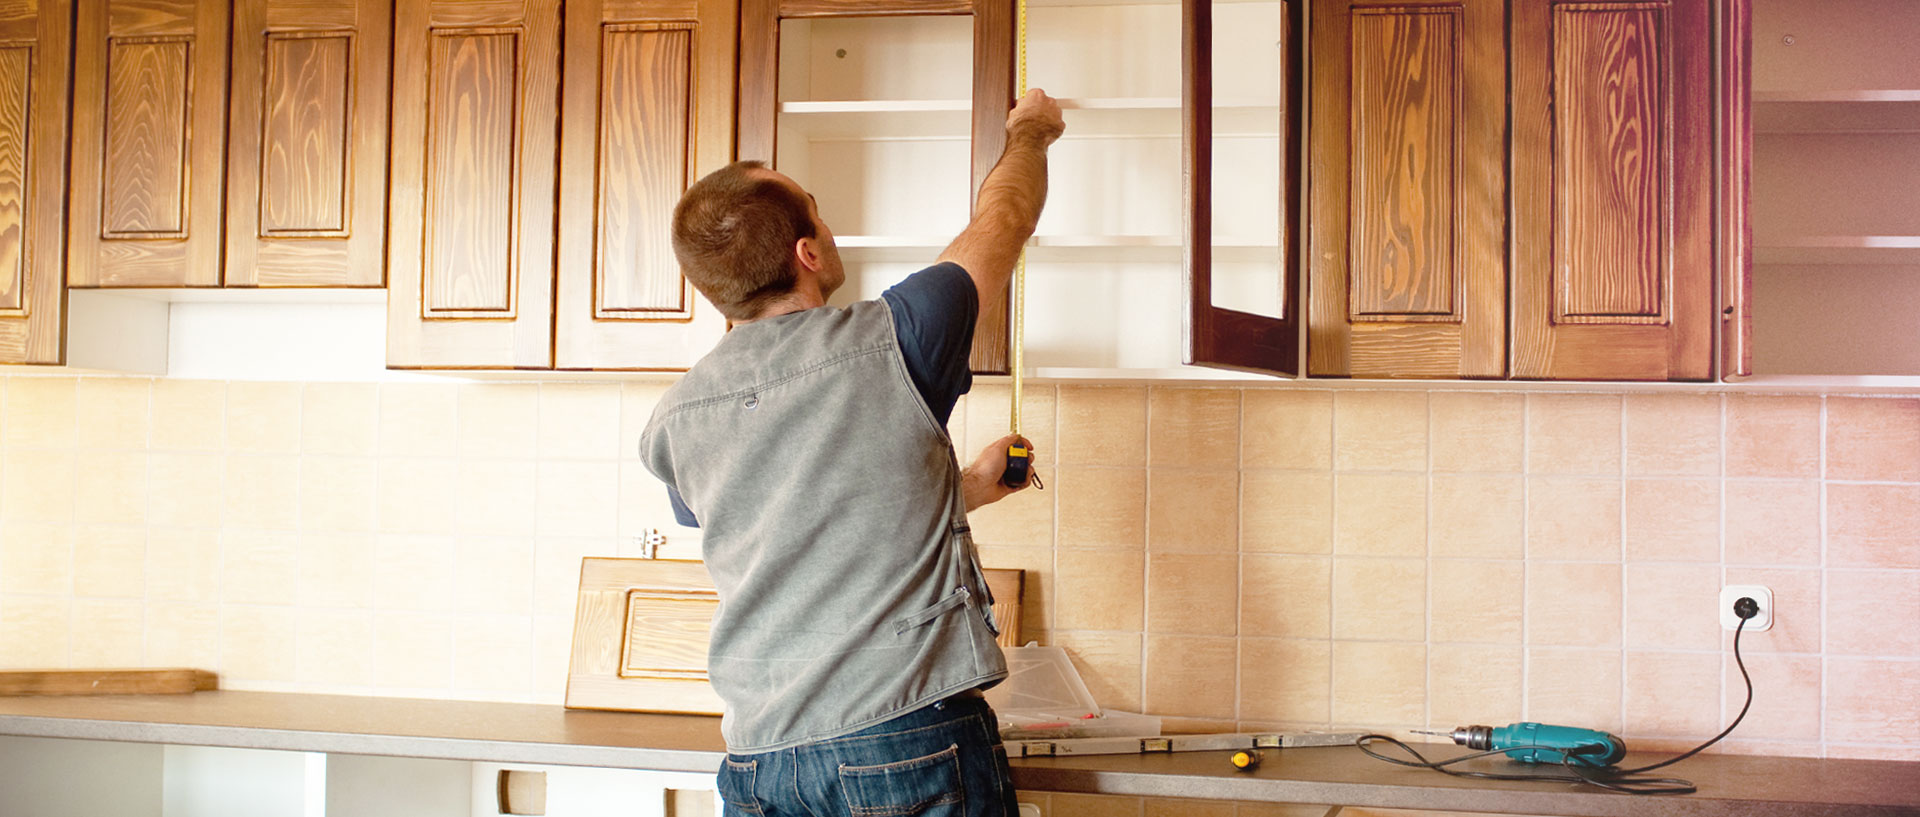 A man installing country-style woodgrain cabinets in a kitchen.